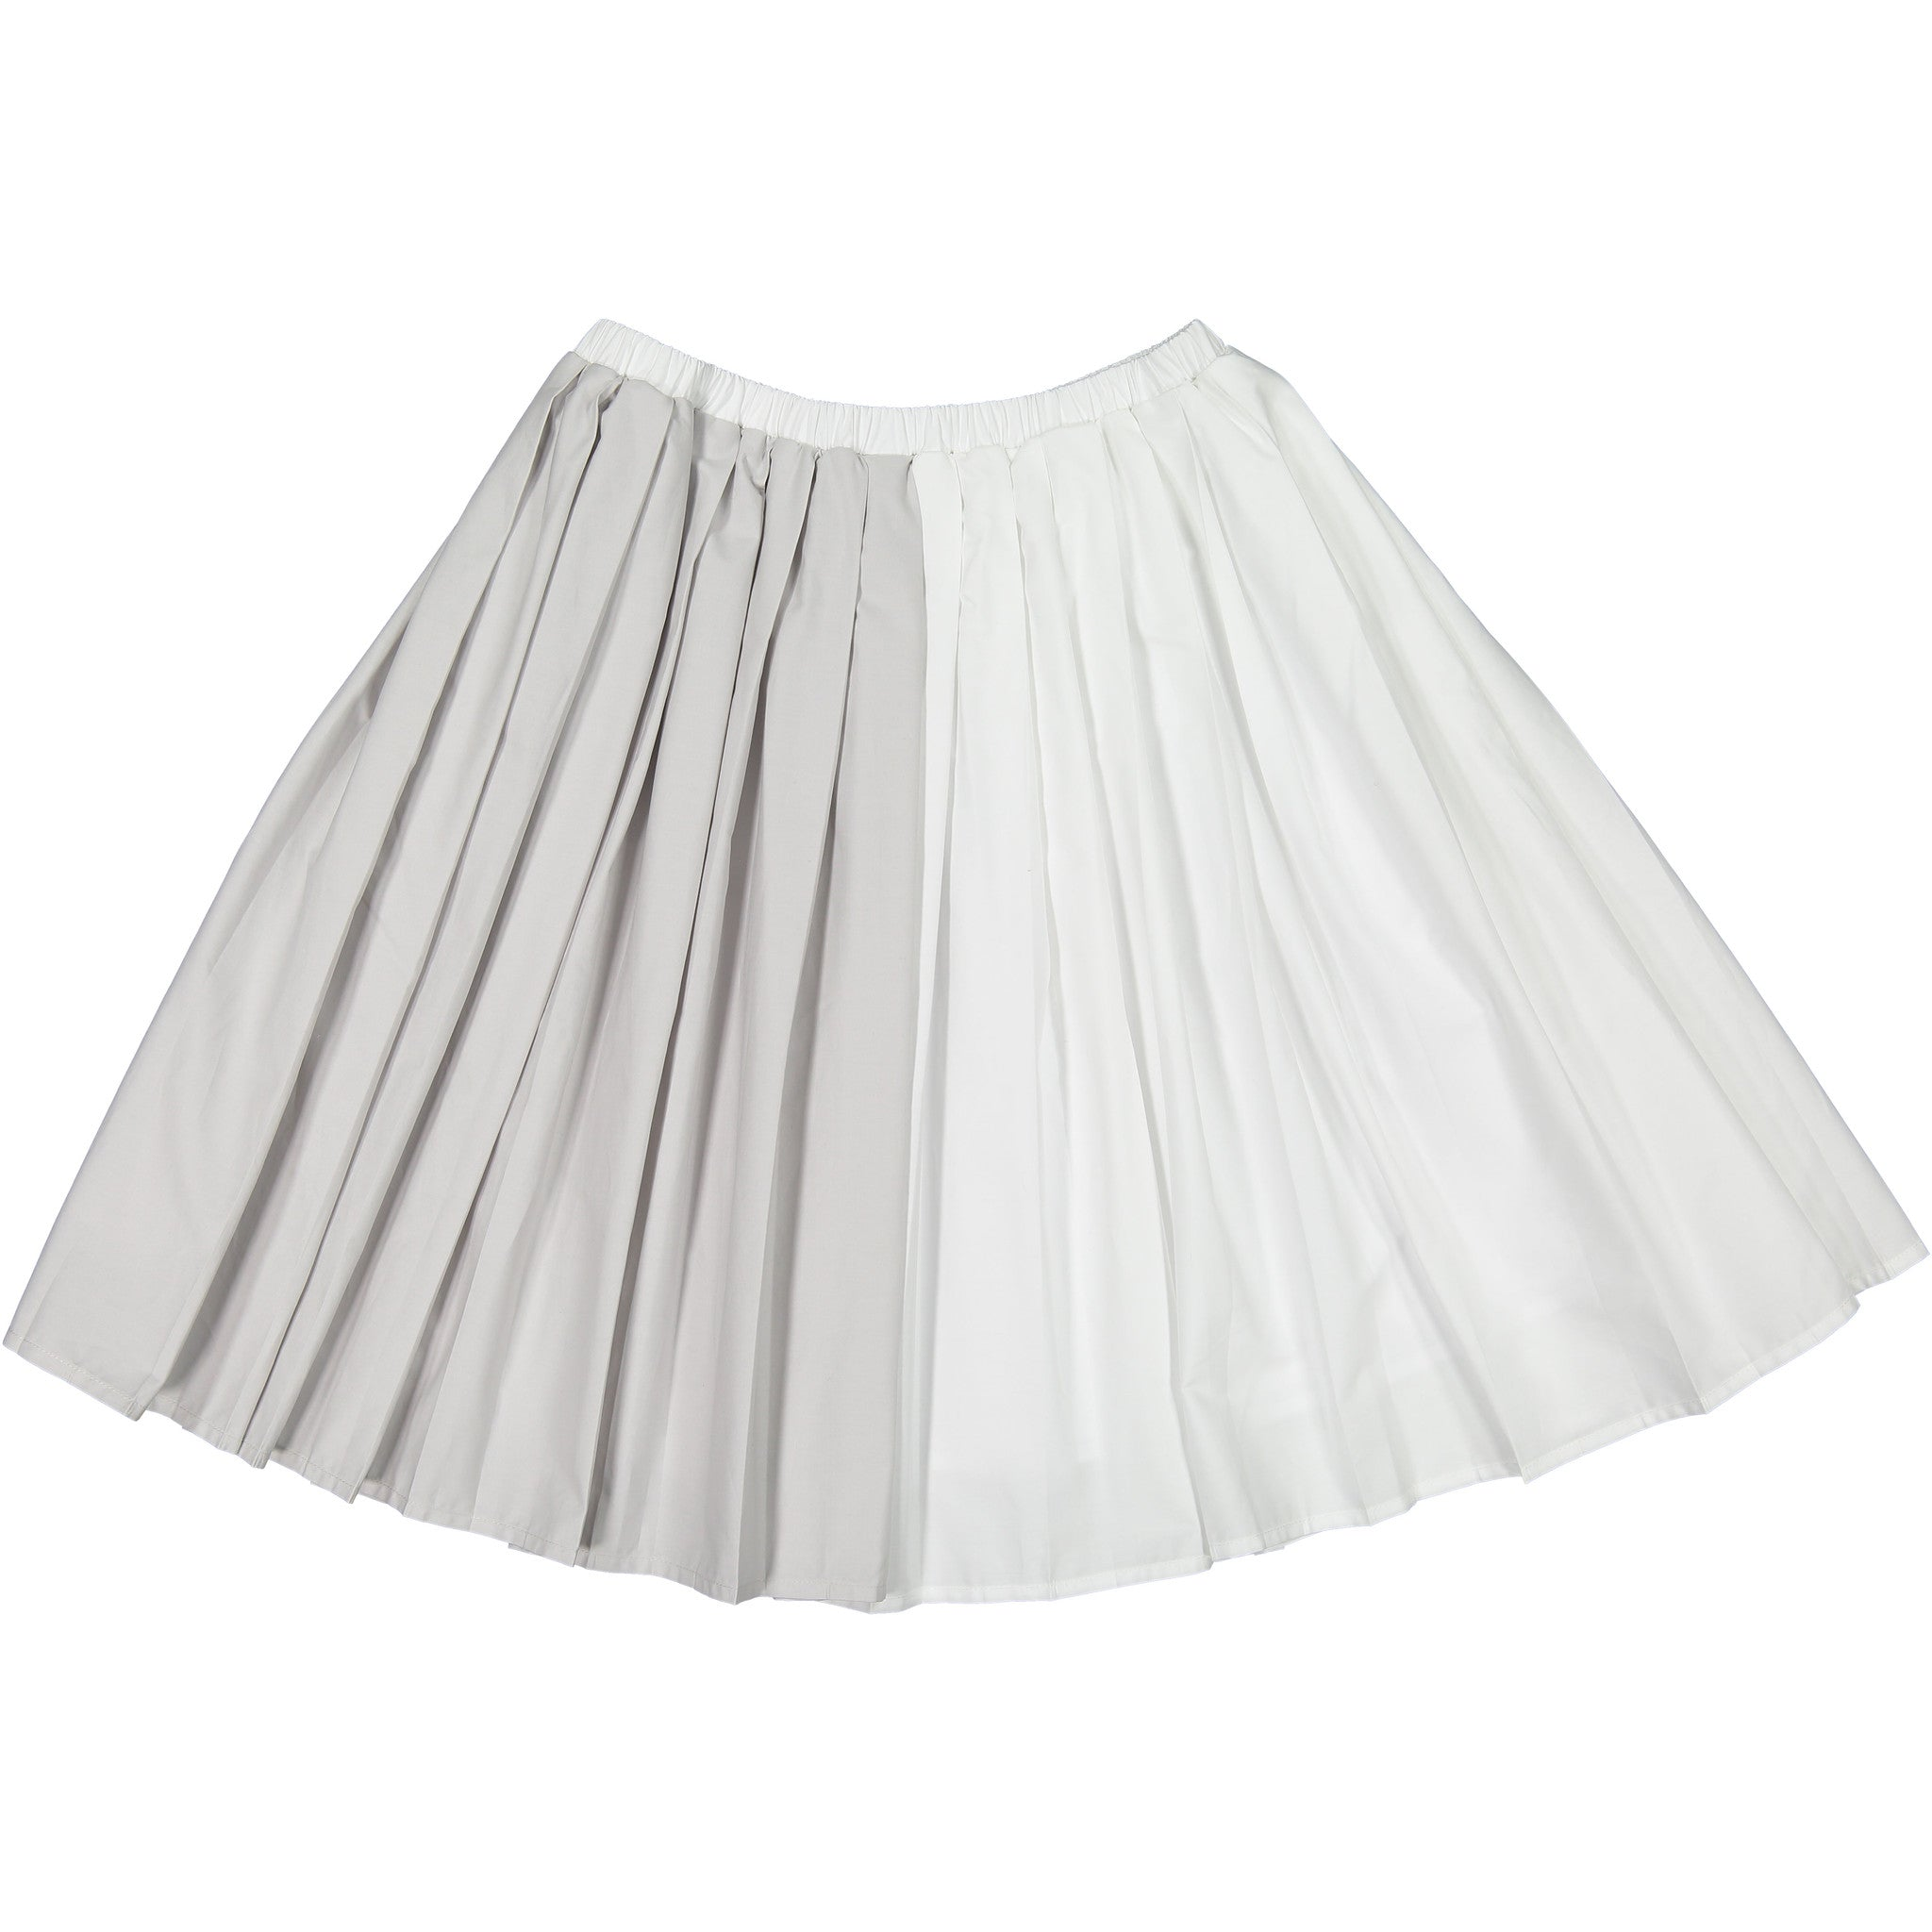 Ava & Lu The Dock Grey and white Skirt